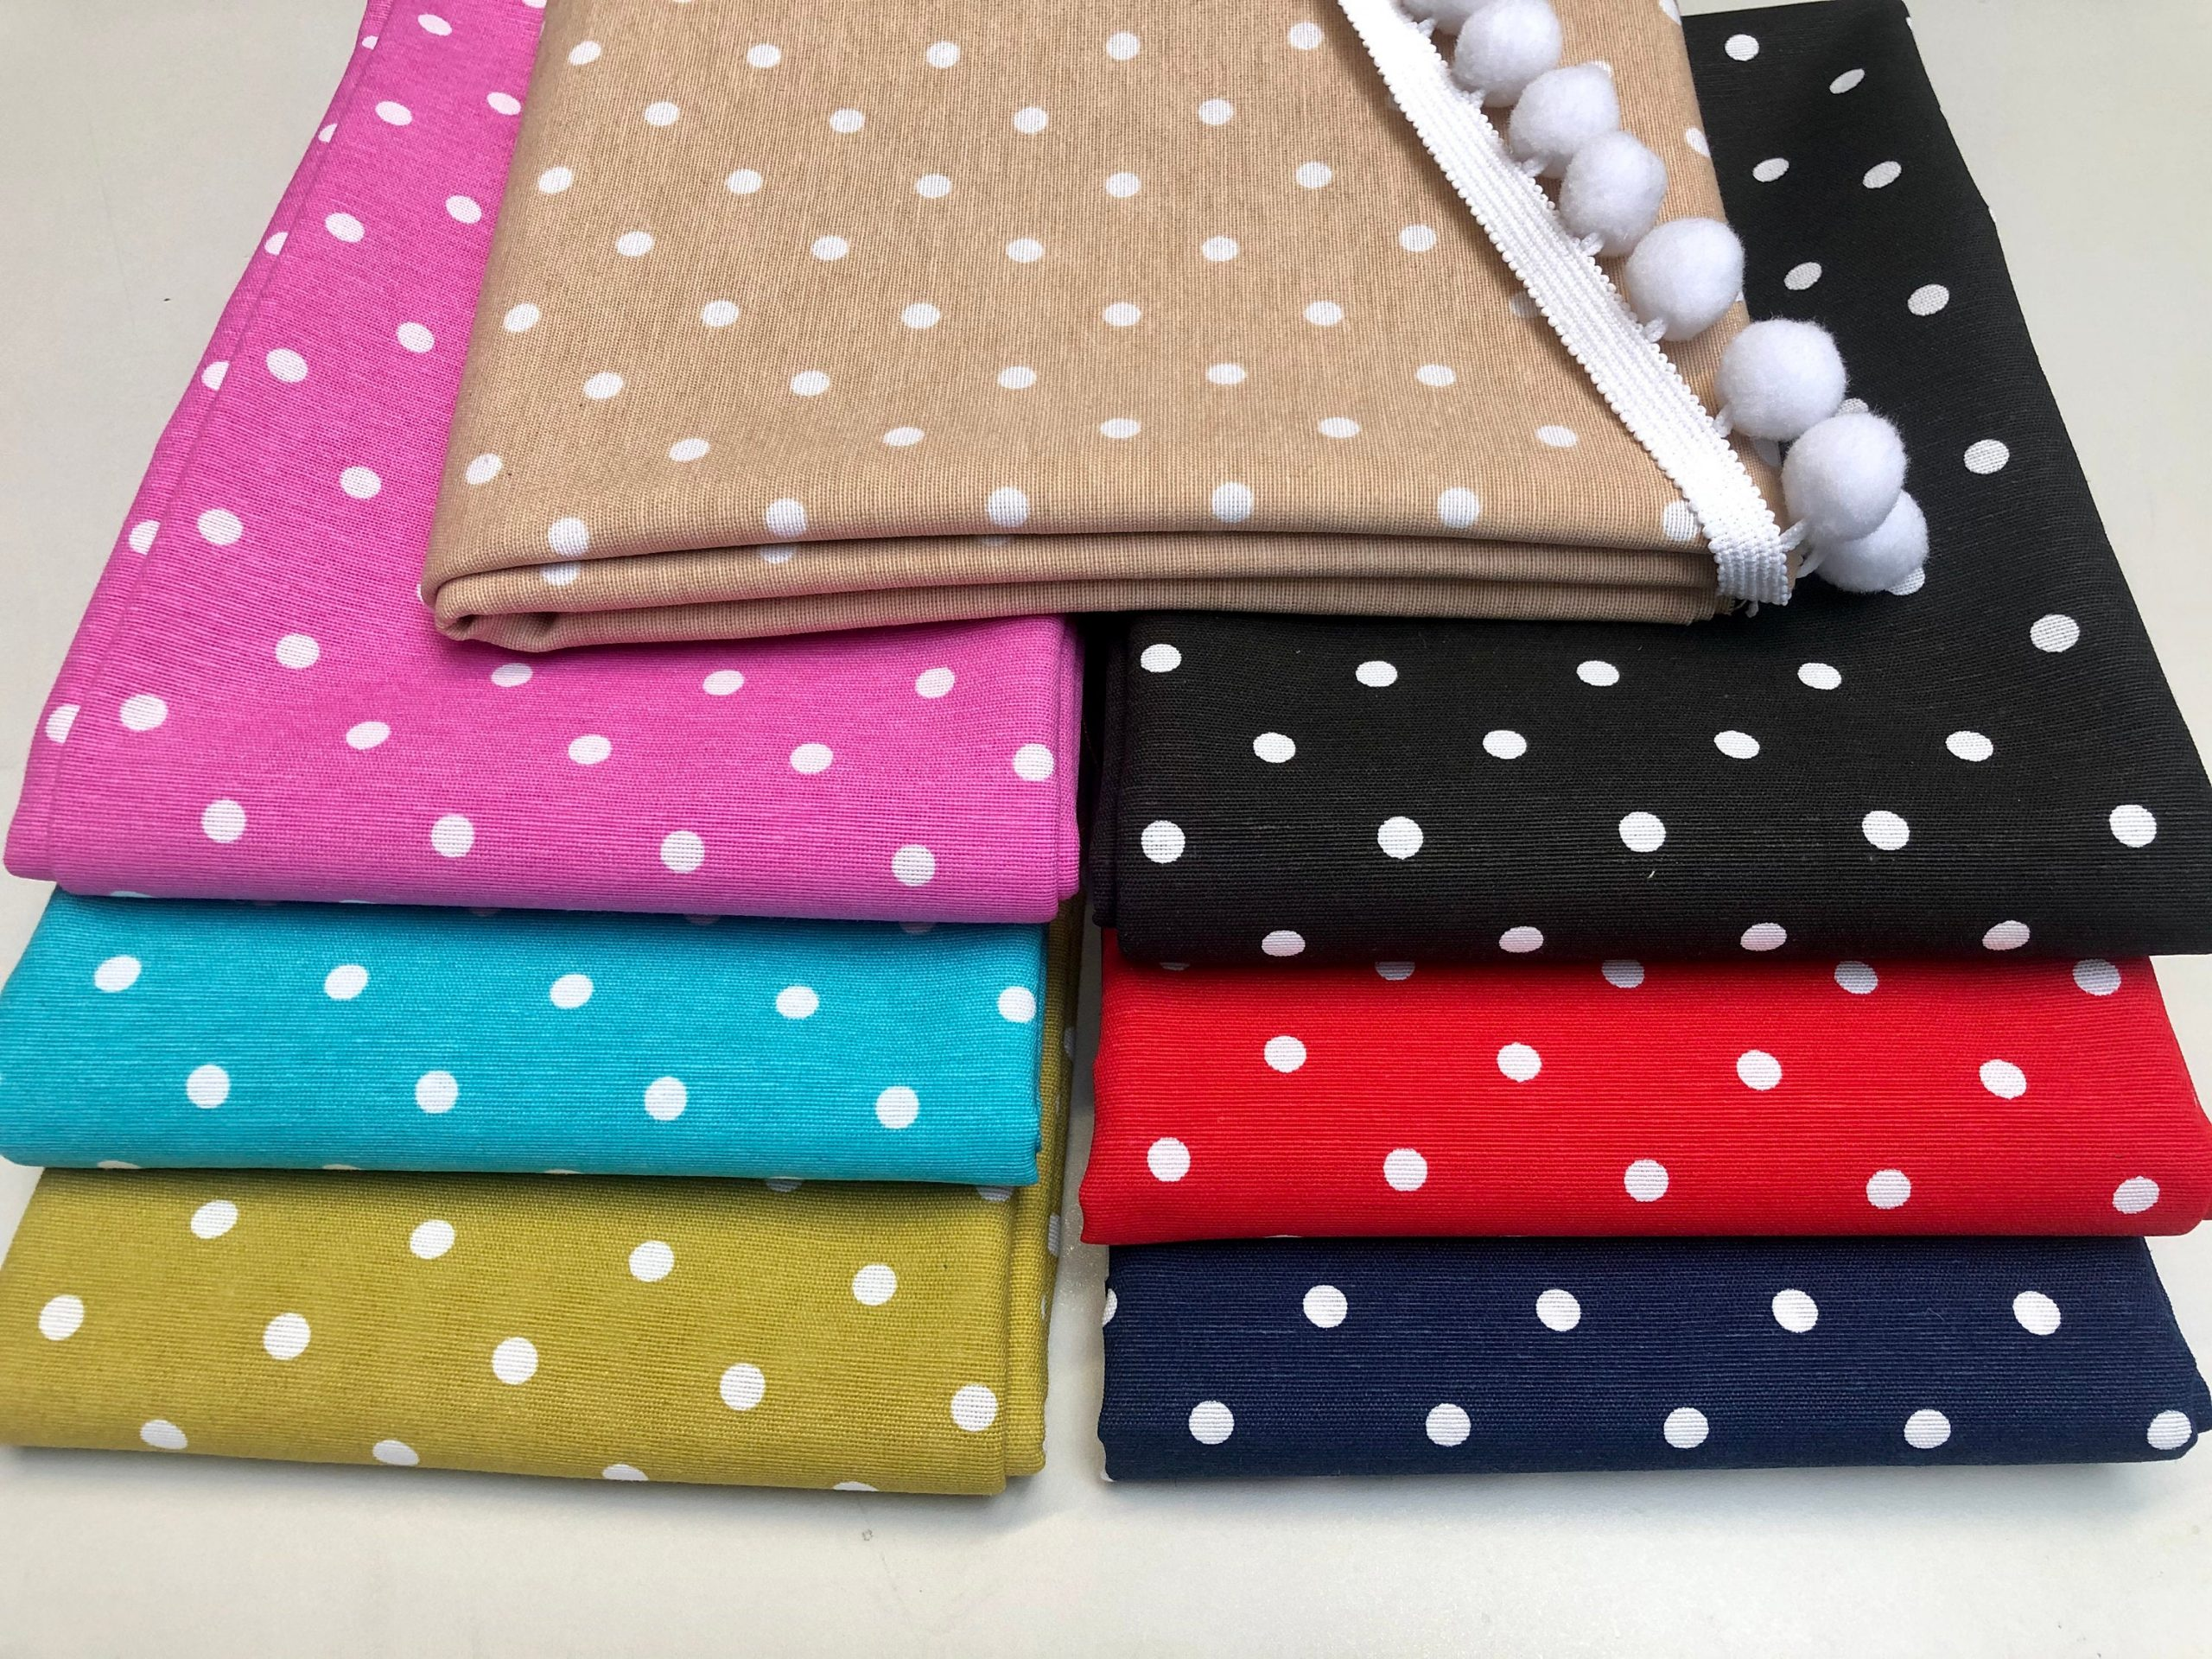 Polka Dot Fabric White Spots Dots PolyCotton Material Shabby Classic Chic Textile Home Decor Dress Curtains – 55''/140cm Wide Canvas